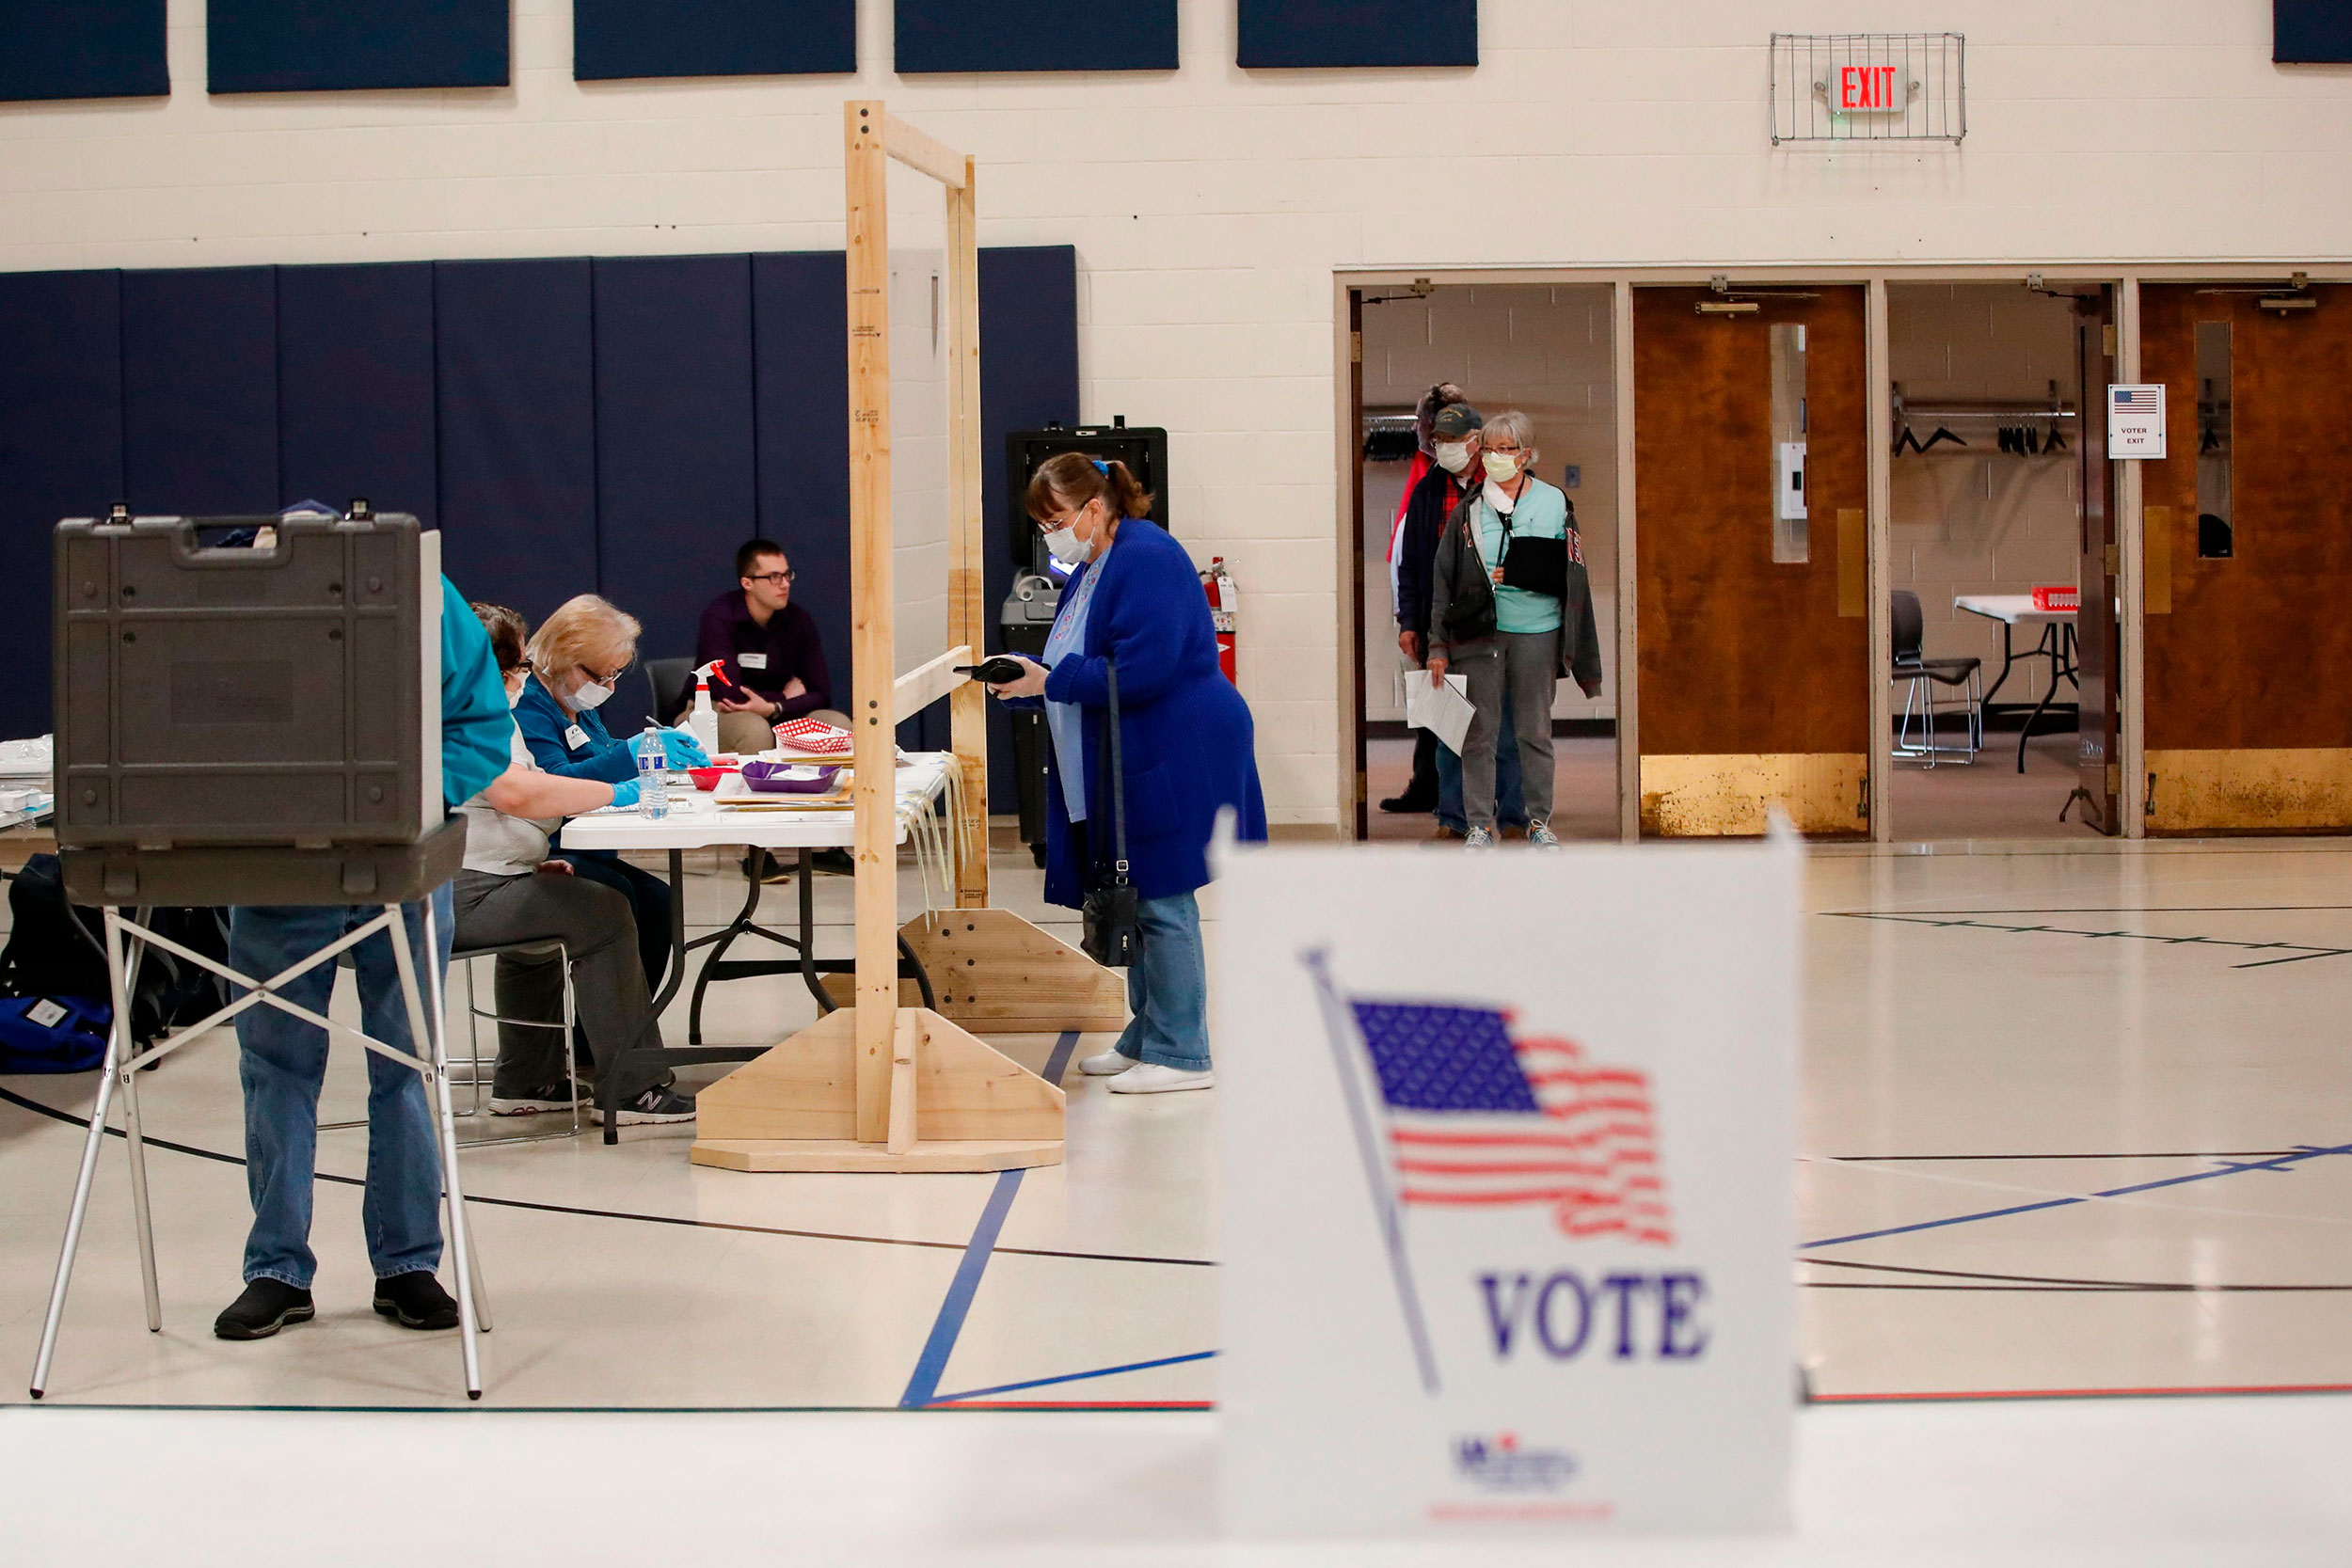 Poll worker recruitment picks up as officials prepare for in-person voting